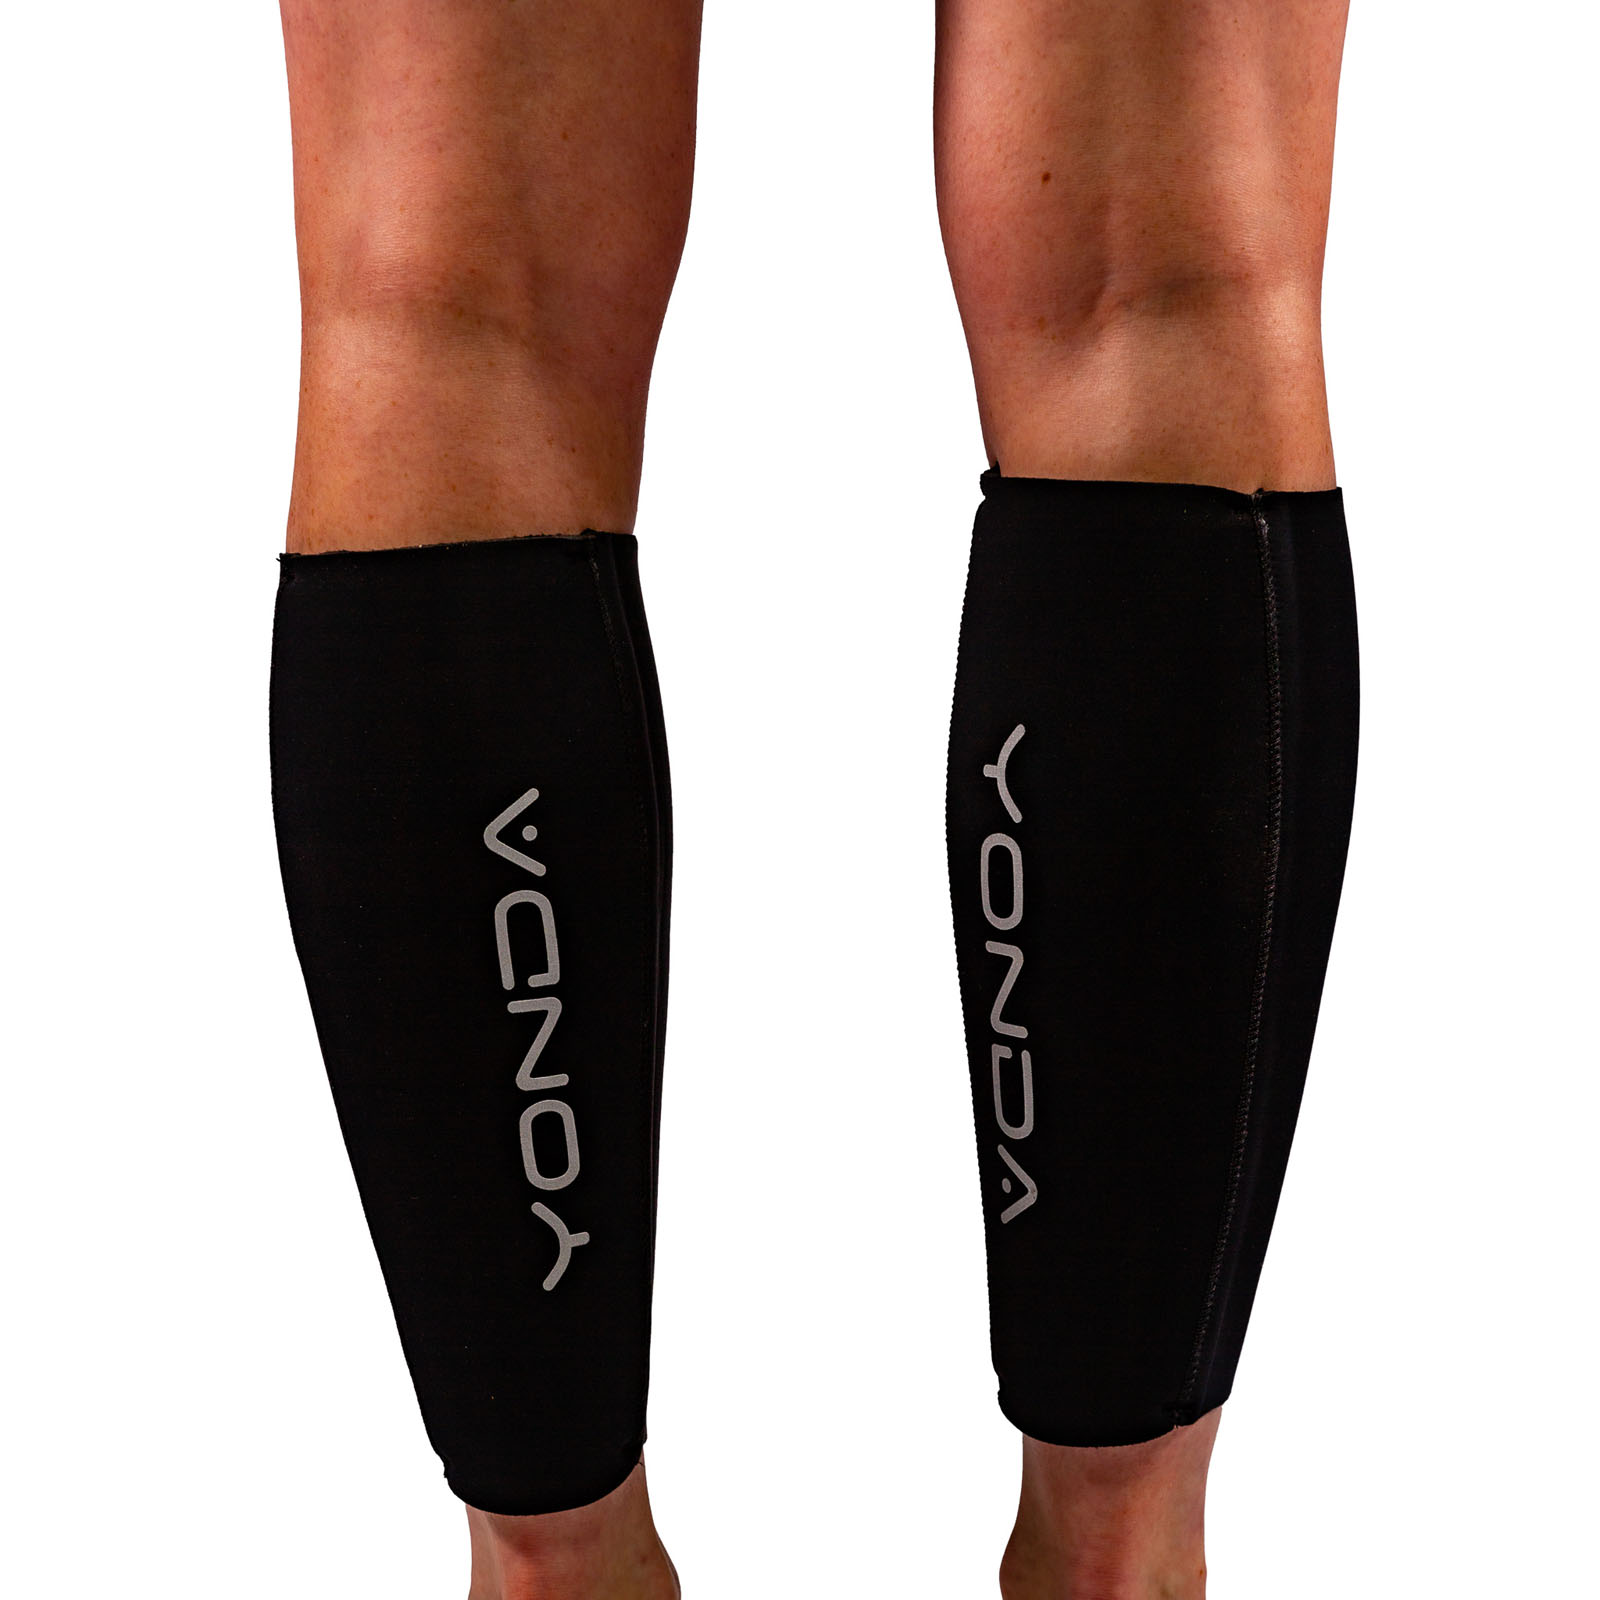 Yonda Neoprene Calf Guards